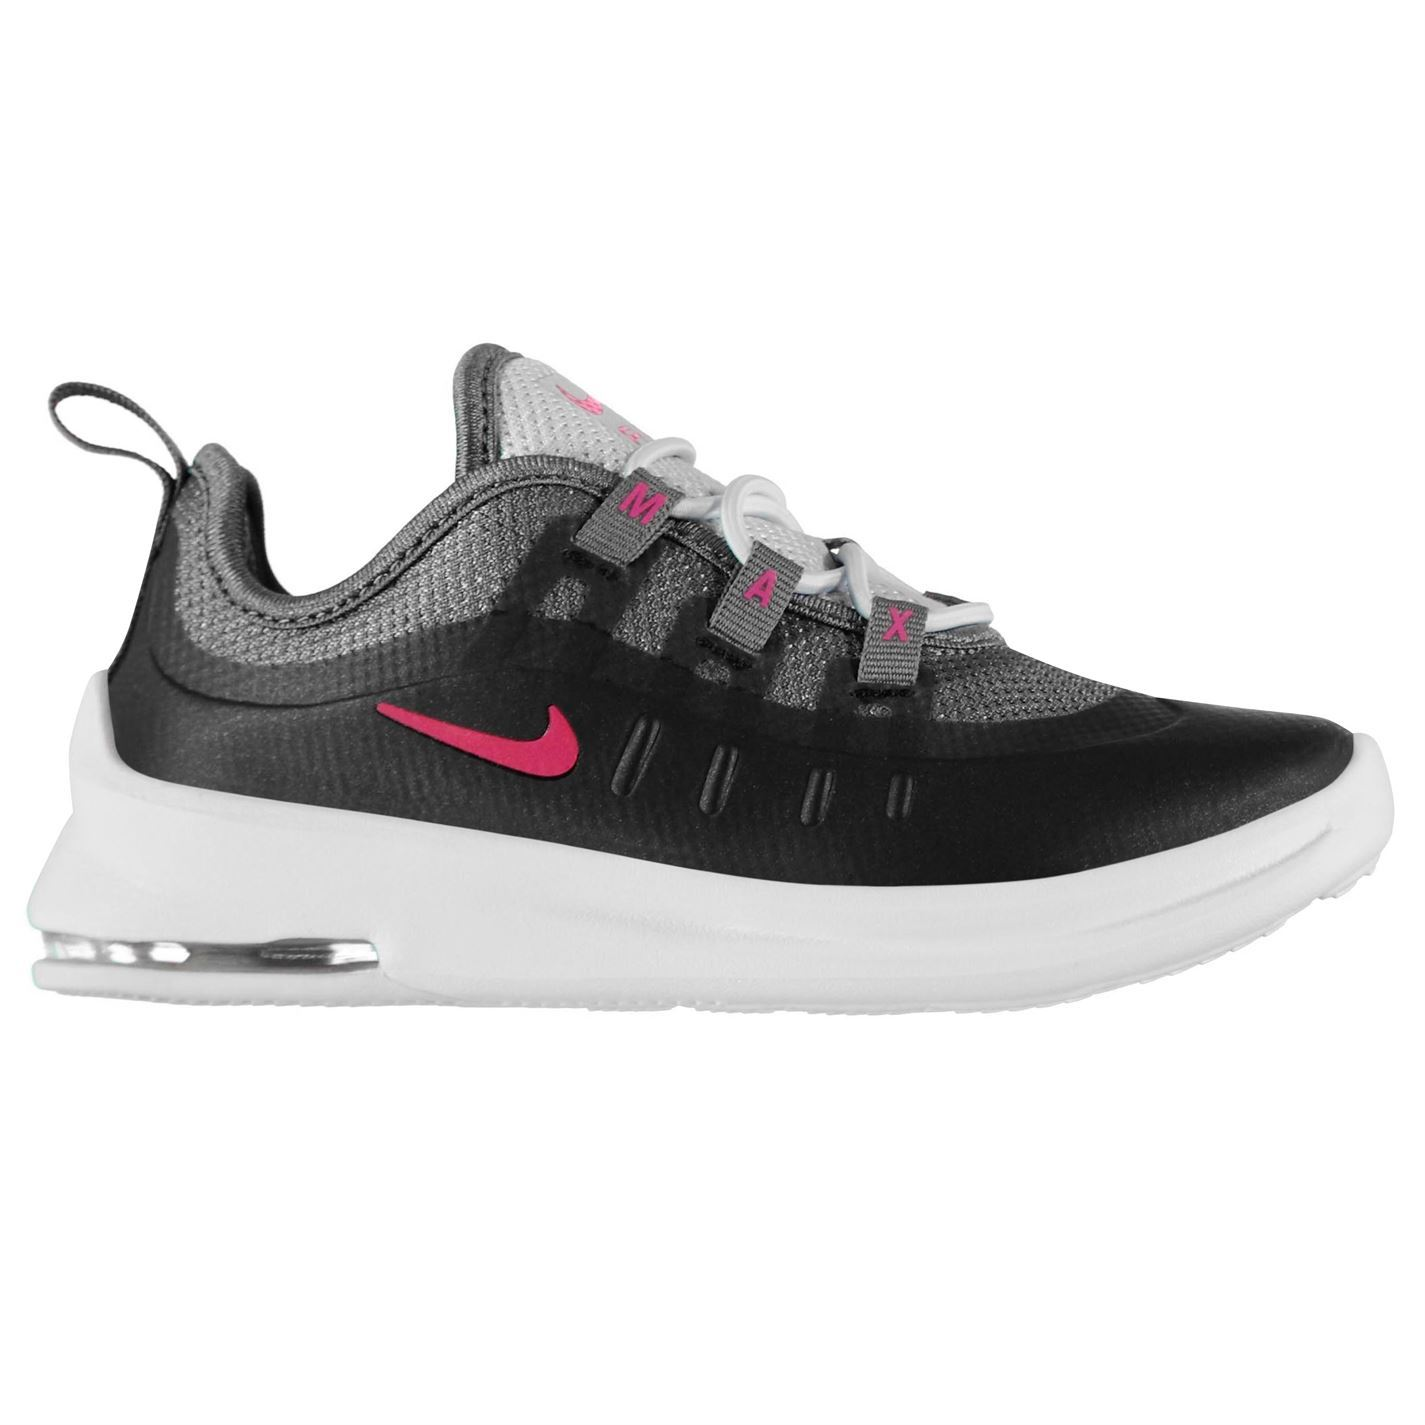 45eb0b051f Details about Nike Air Max Axis Infant Girls Black/Pink Shoes Footwear